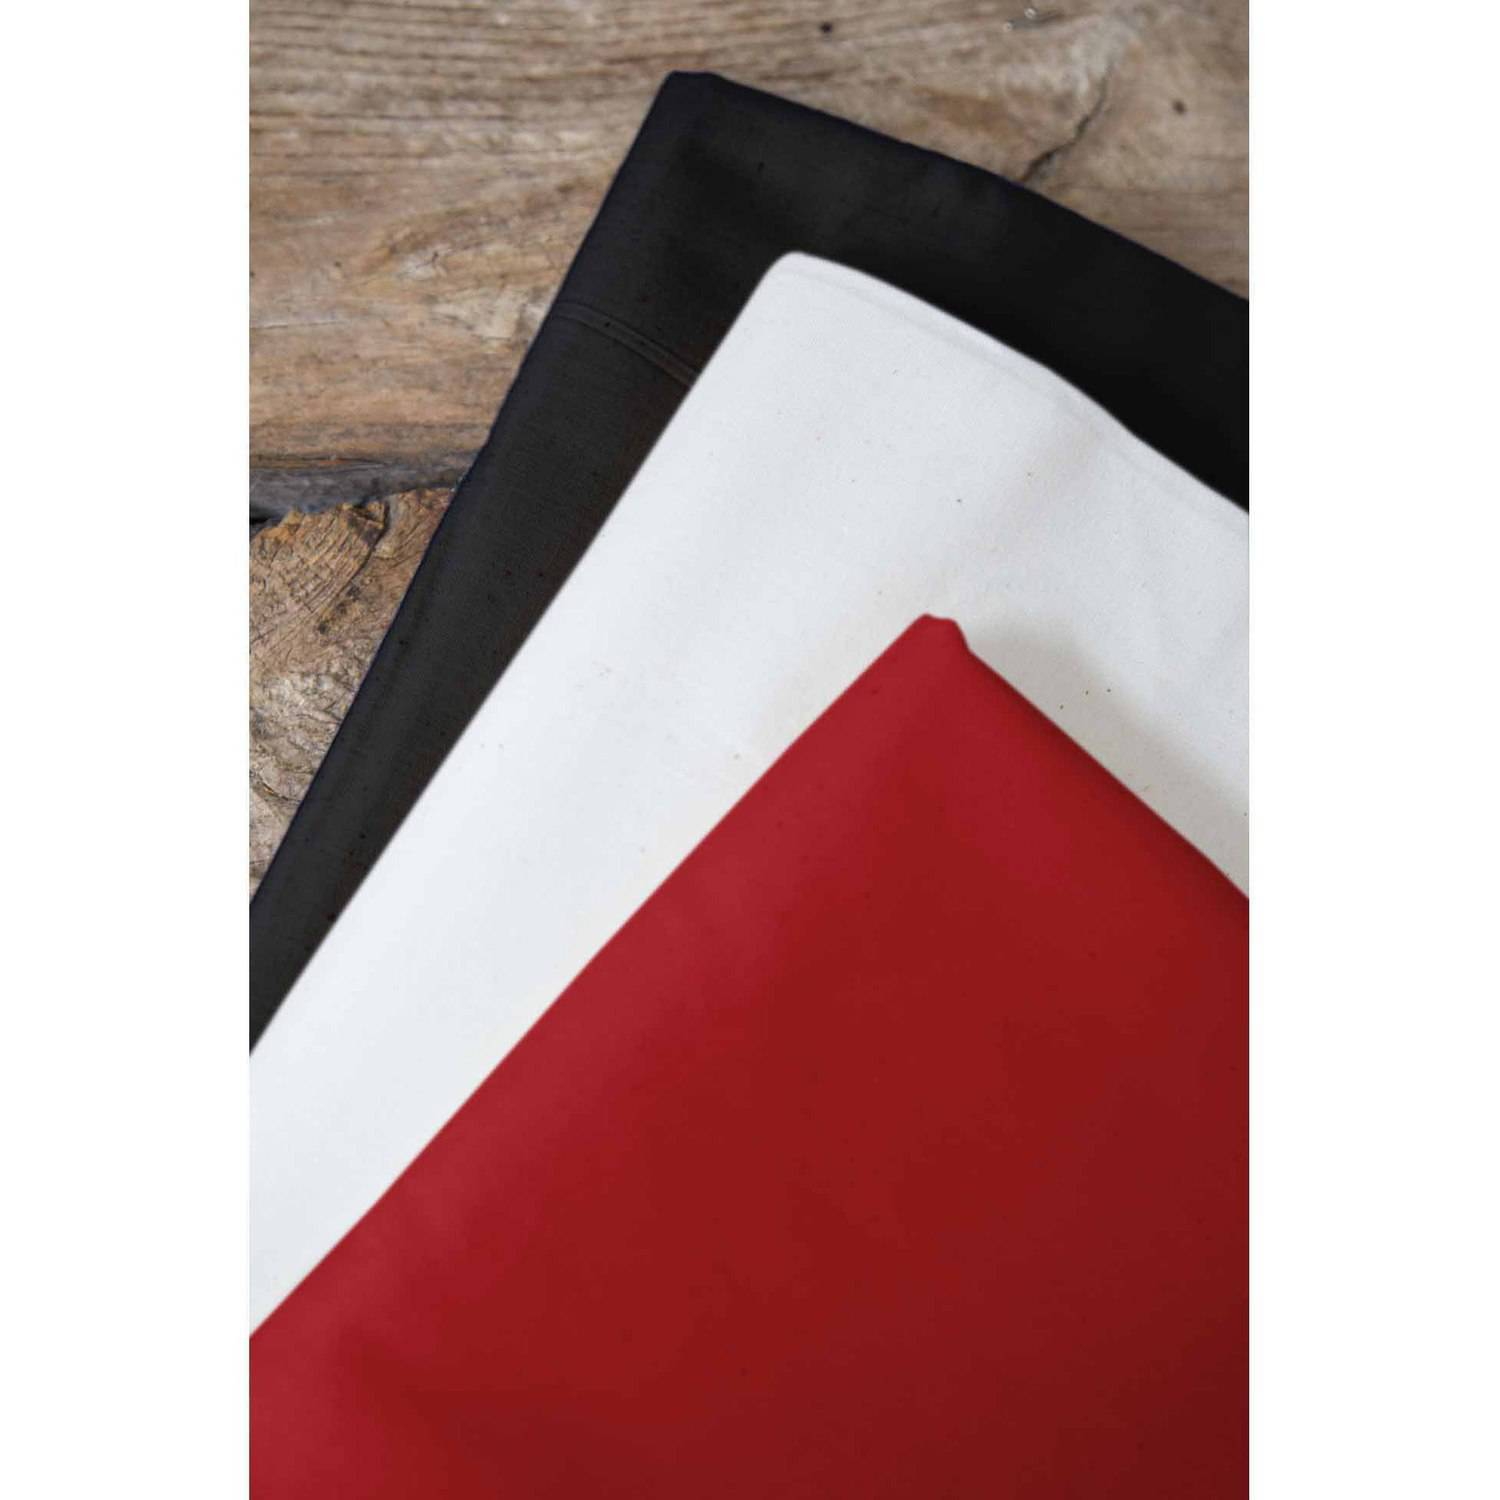 "Back to Basics Palencia Broadcloth Fabric Bundle, White-Black-Real Red, 44/45"" Width, 2-yd Cuts"